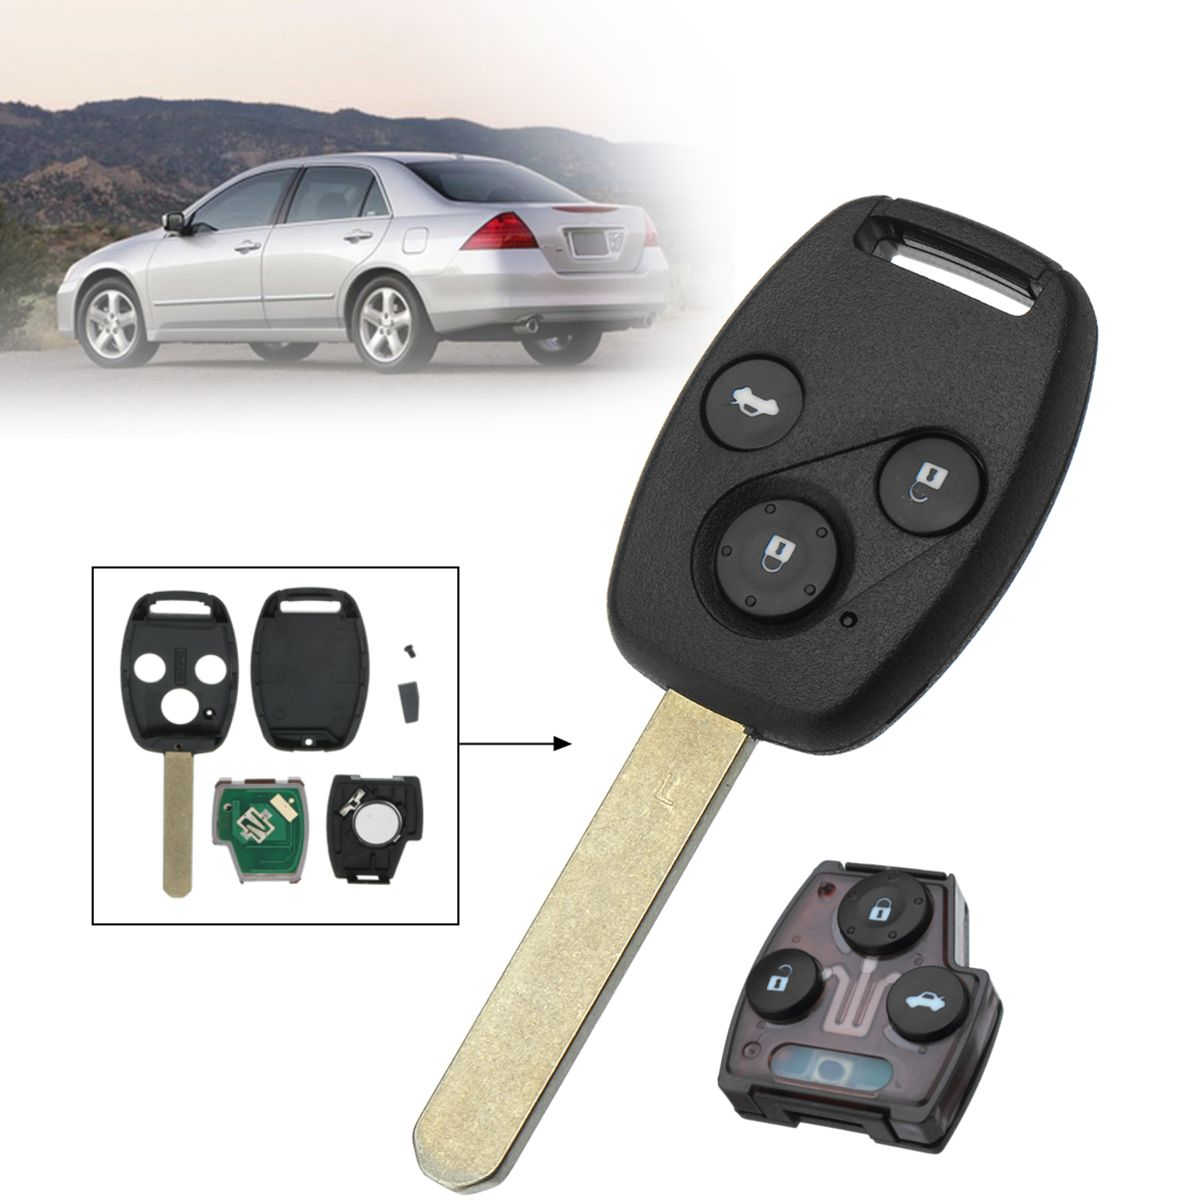 3 Buttons 313.8Mhz HON66 CR1616 Car Remote Key Fob Case Shell with ID46 Chip For Honda/Accord/Civic Fit 2003 2004 2005 2006 2007 jignyuqin 3 buttons remote key shell for honda accord insight crv civic odyssey pilot ridgeline car alarm keyless entry fob case